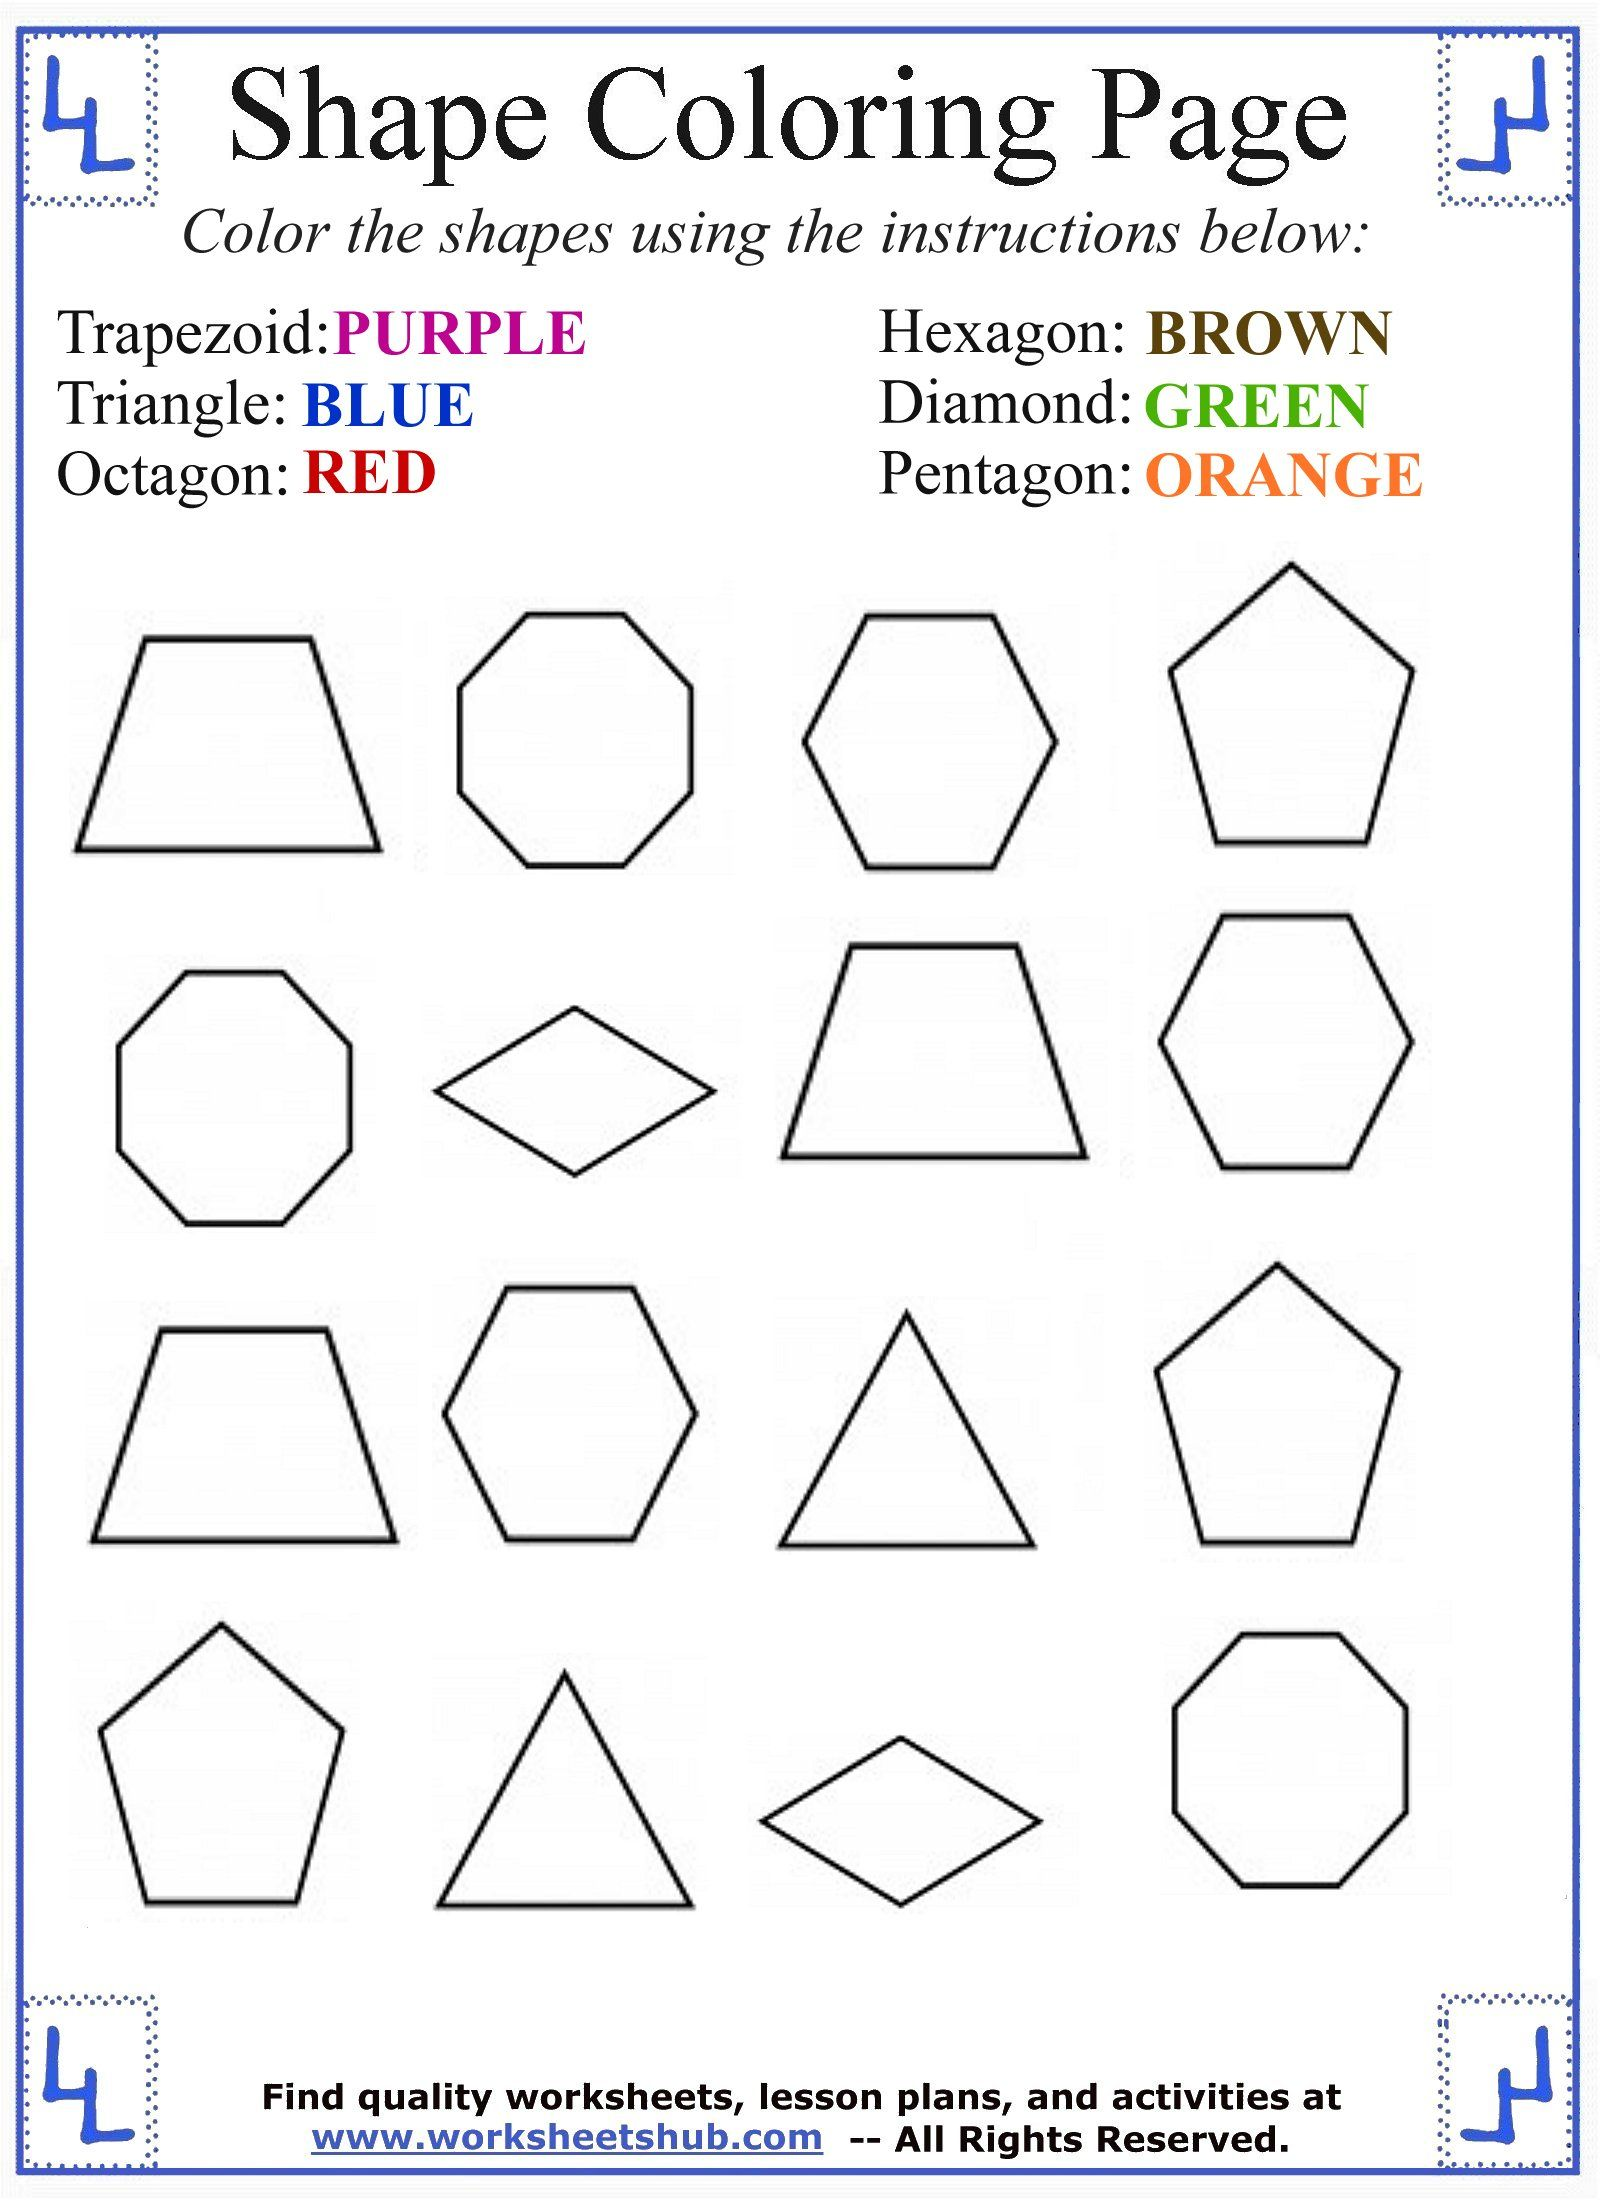 Coloring Shape Names 2 In